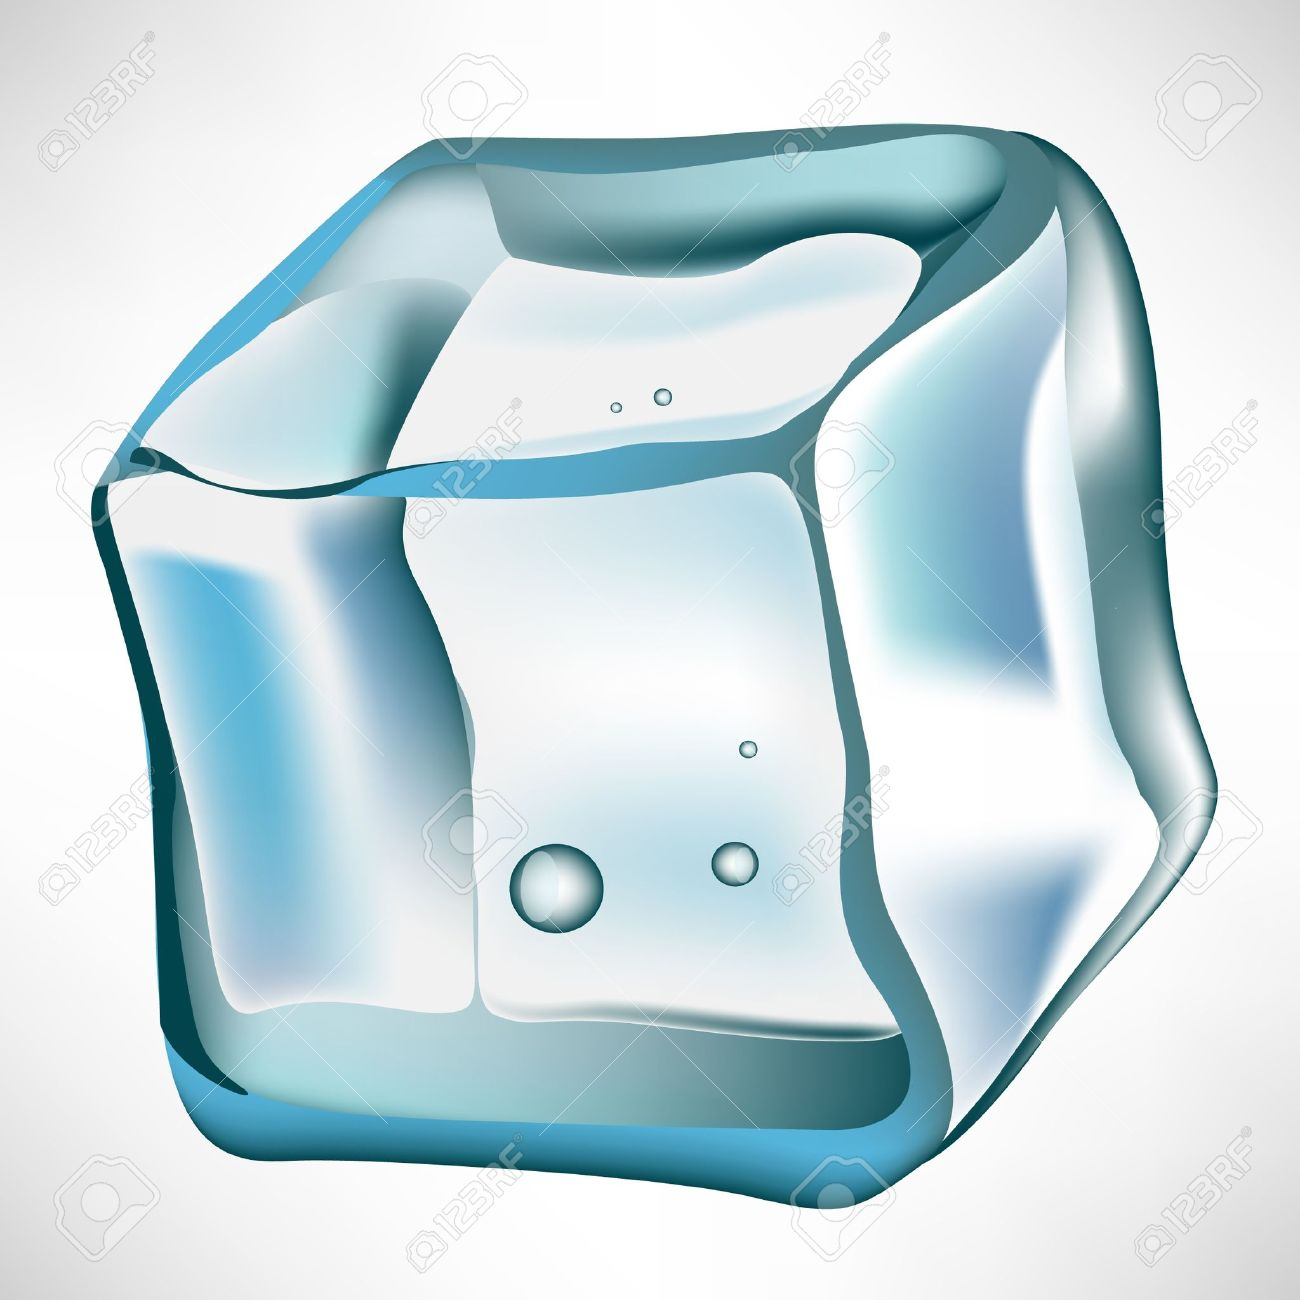 Ice Cubes clipart #11, Download drawings